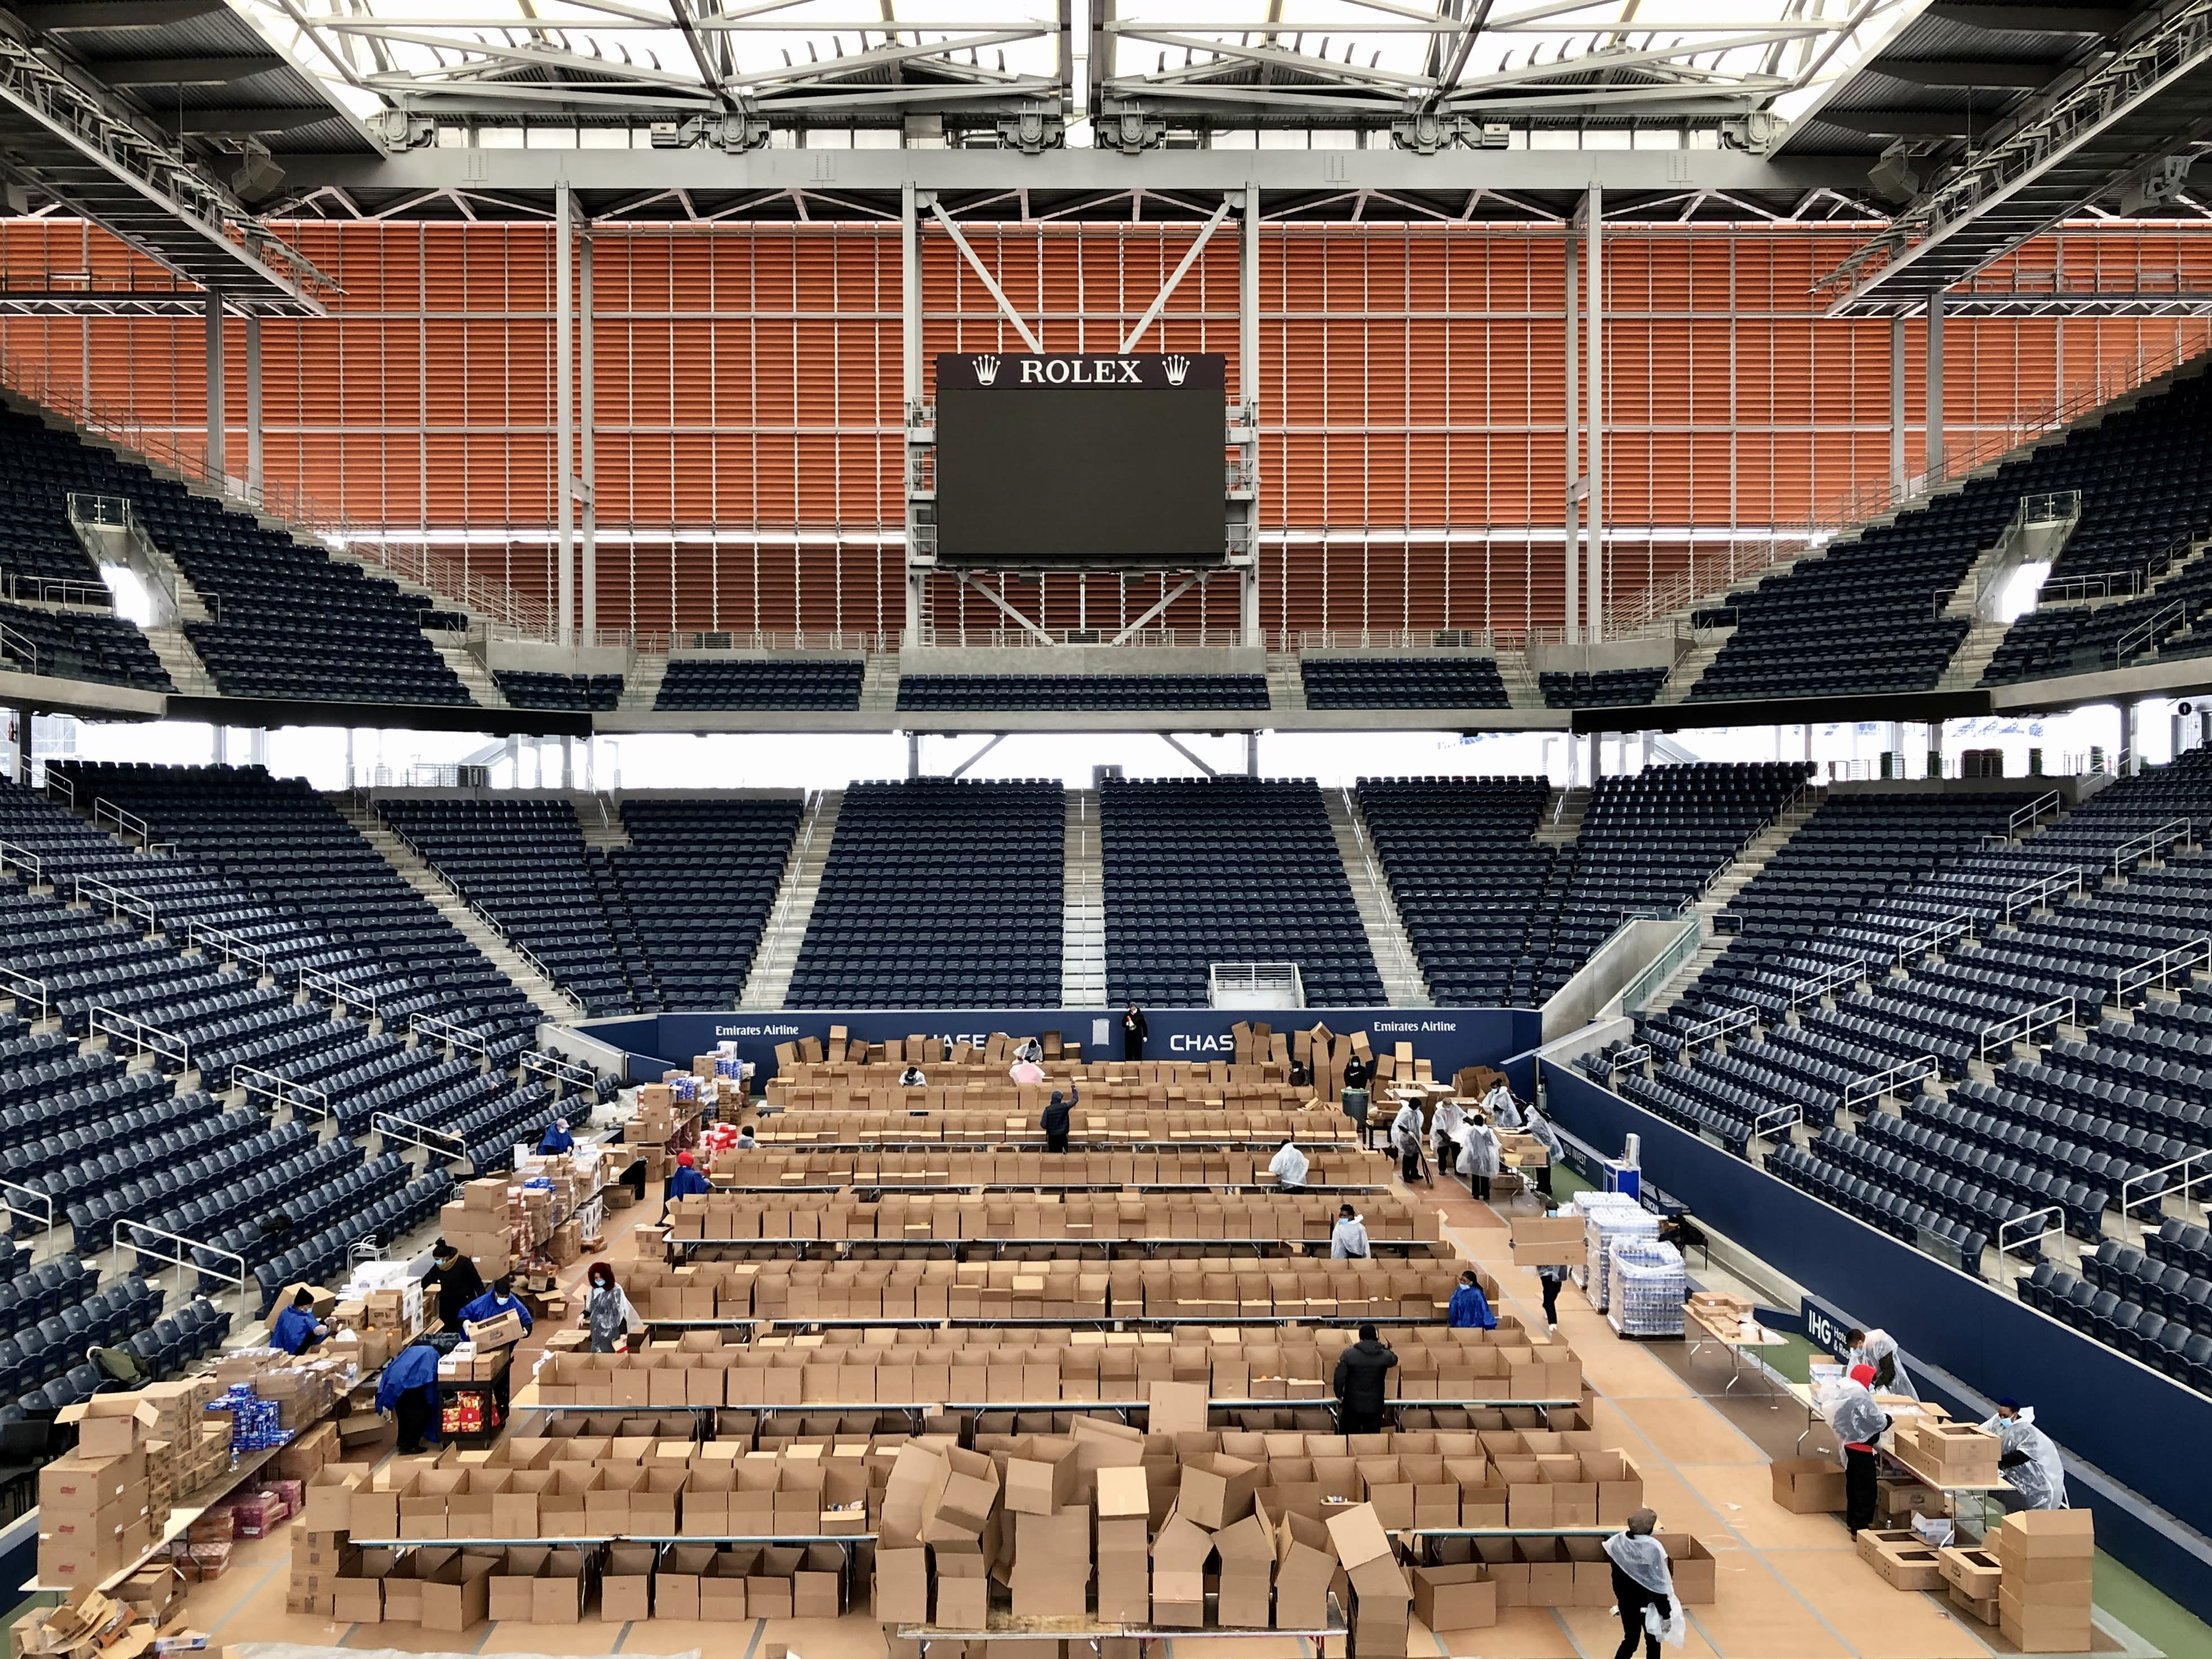 Why the US Open tennis complex is being converted into a coronavirus hospital